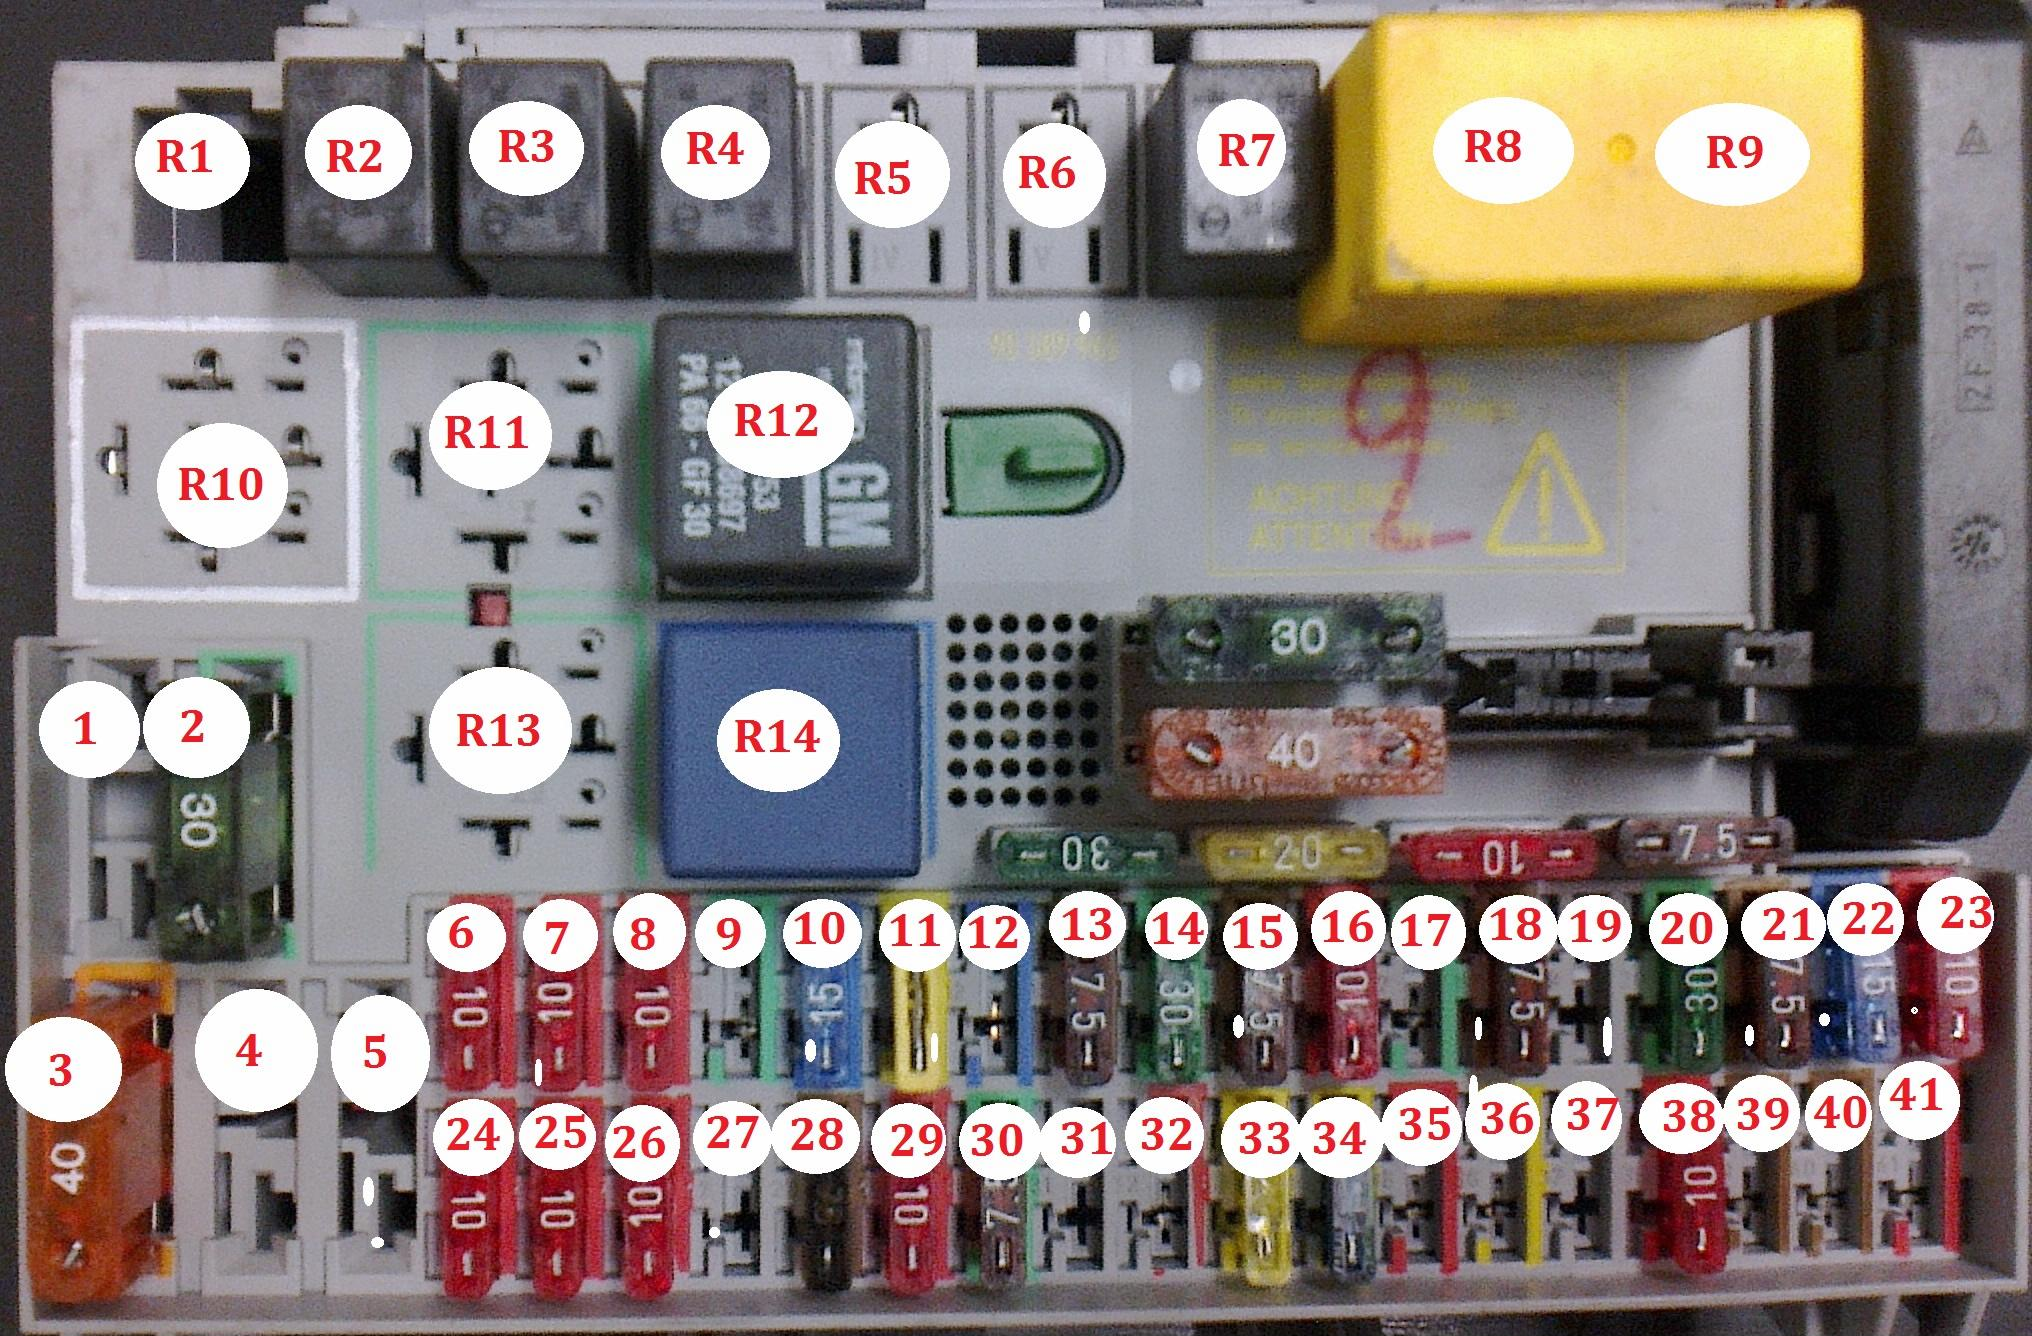 2011 Mazda 3 Fuse Box Location Wiring Library Layout Opel Astrag Blok Salon 2 And Relay Diagram